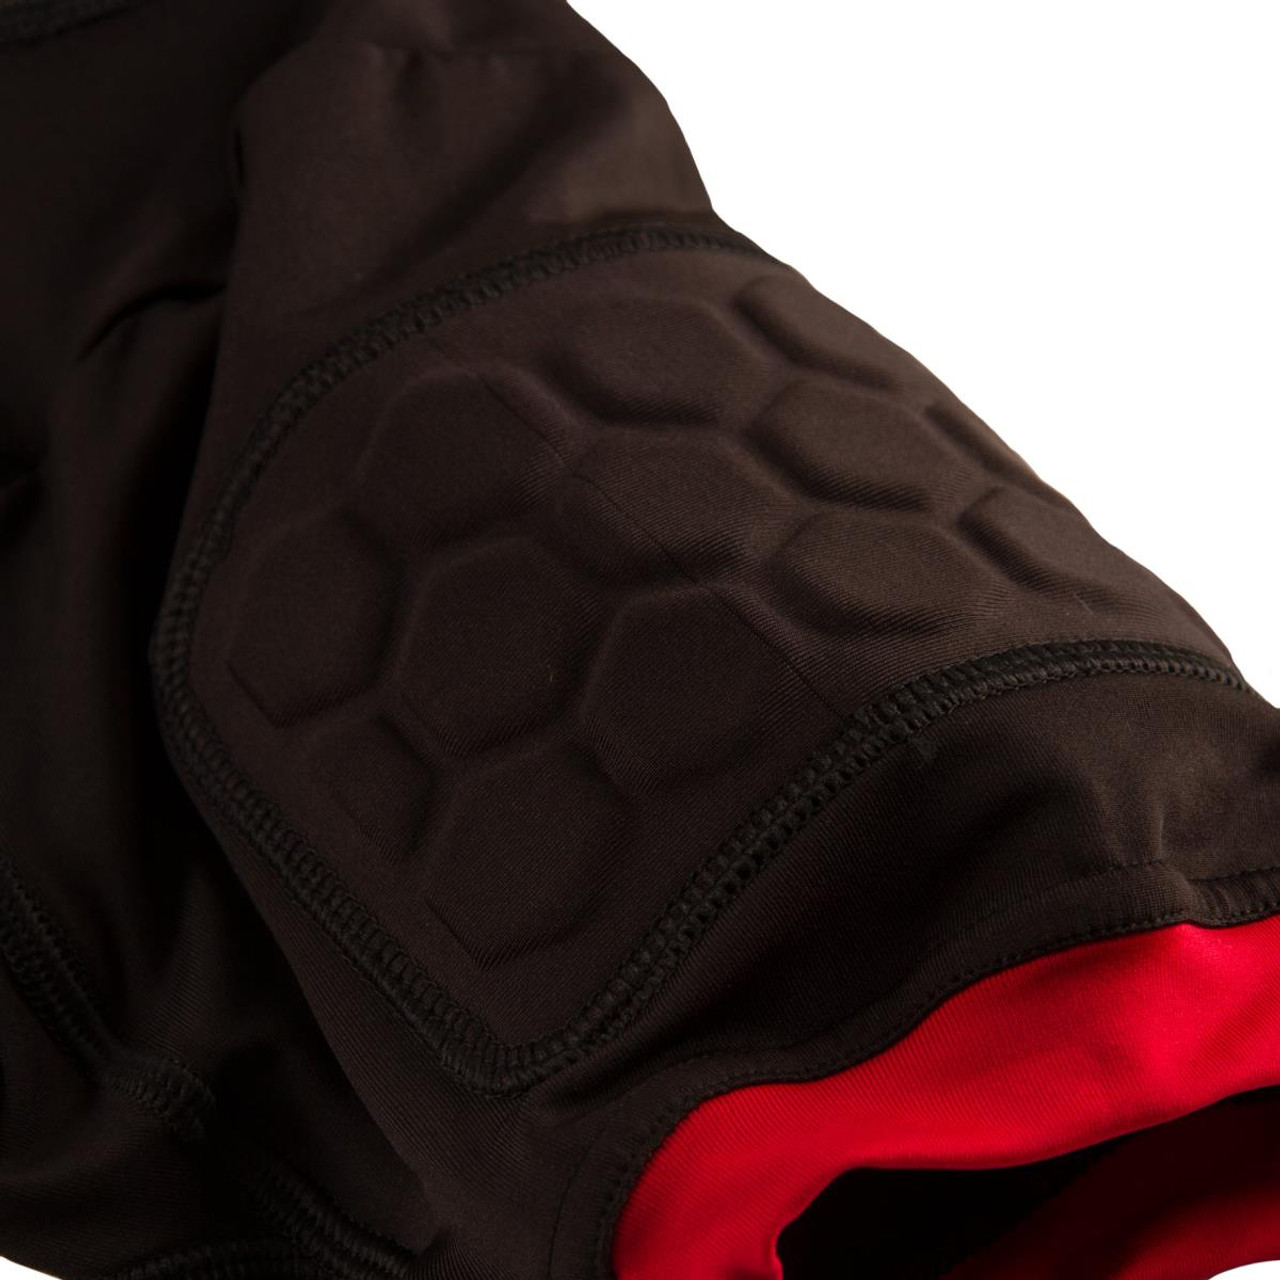 Flat, celluar padding in the sleeves for arm protection.